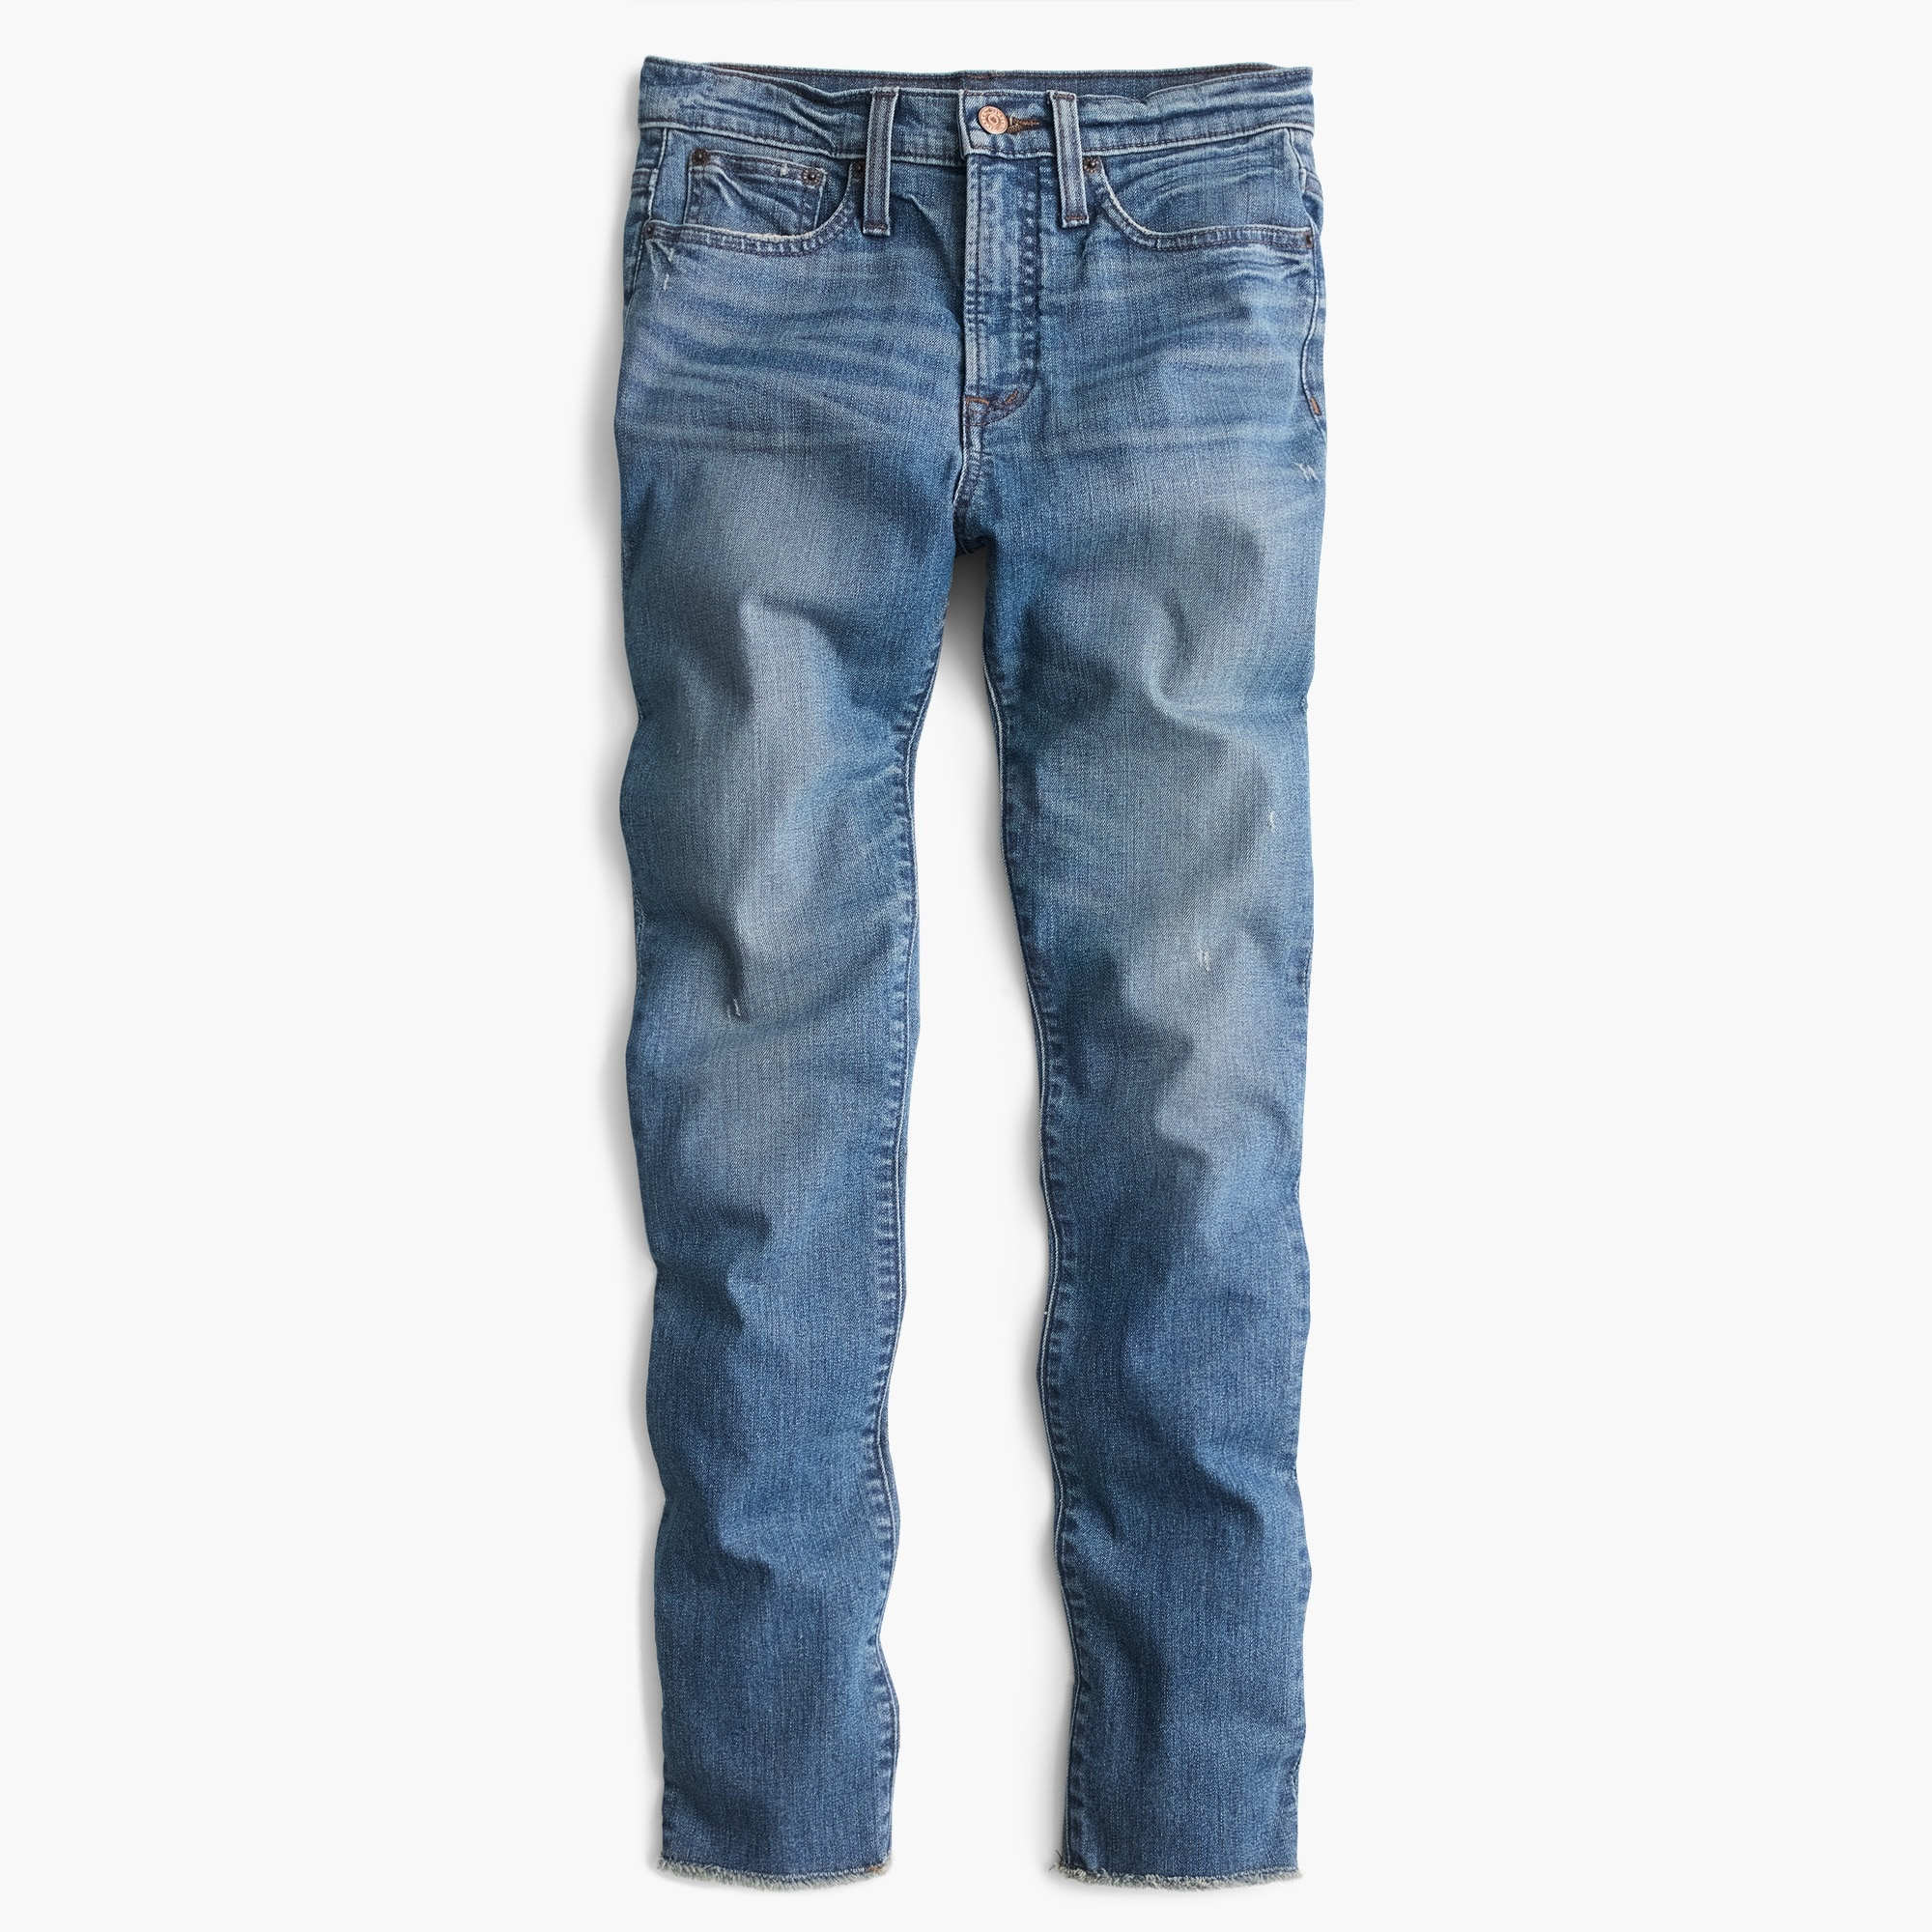 Image 1 for Tall vintage crop jean in Landers wash